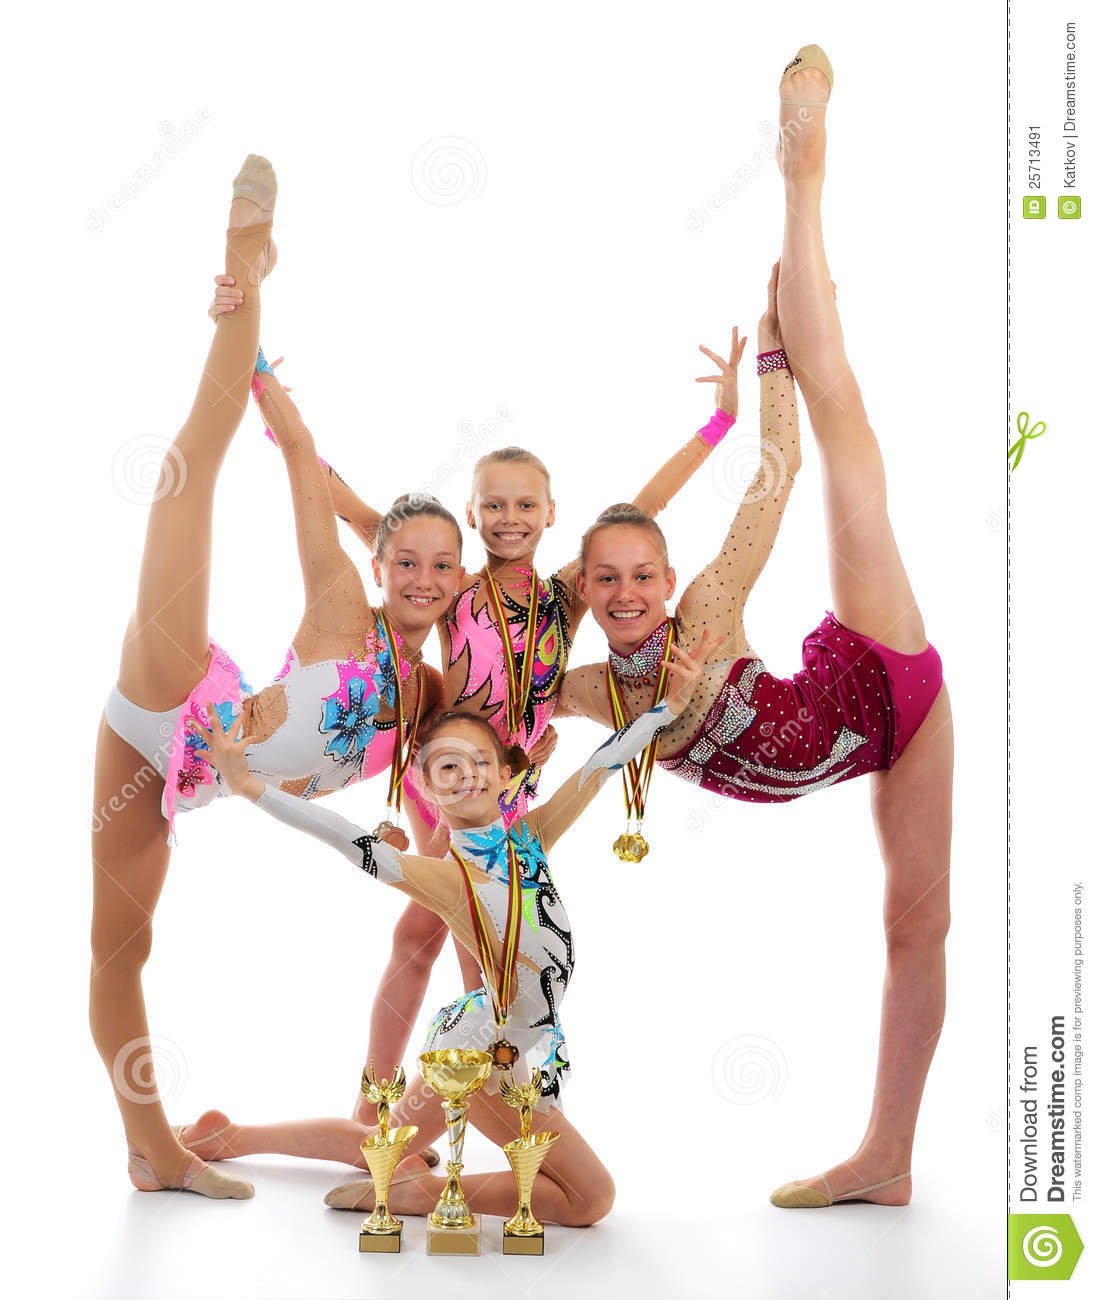 Young Gymnasts Stock Image - Image: 25713491